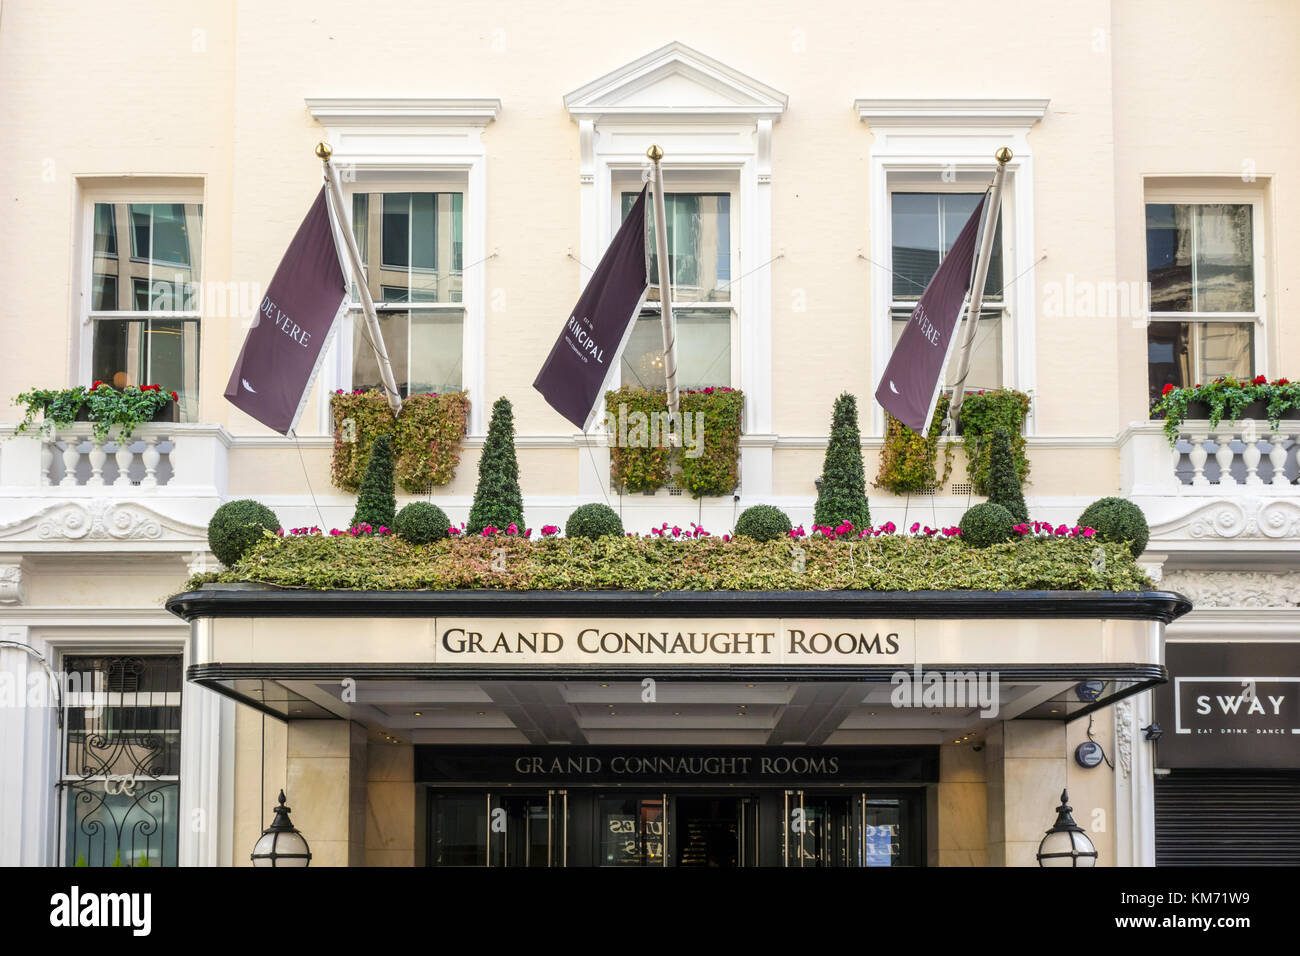 Grand Connaught Rooms Queen Street London